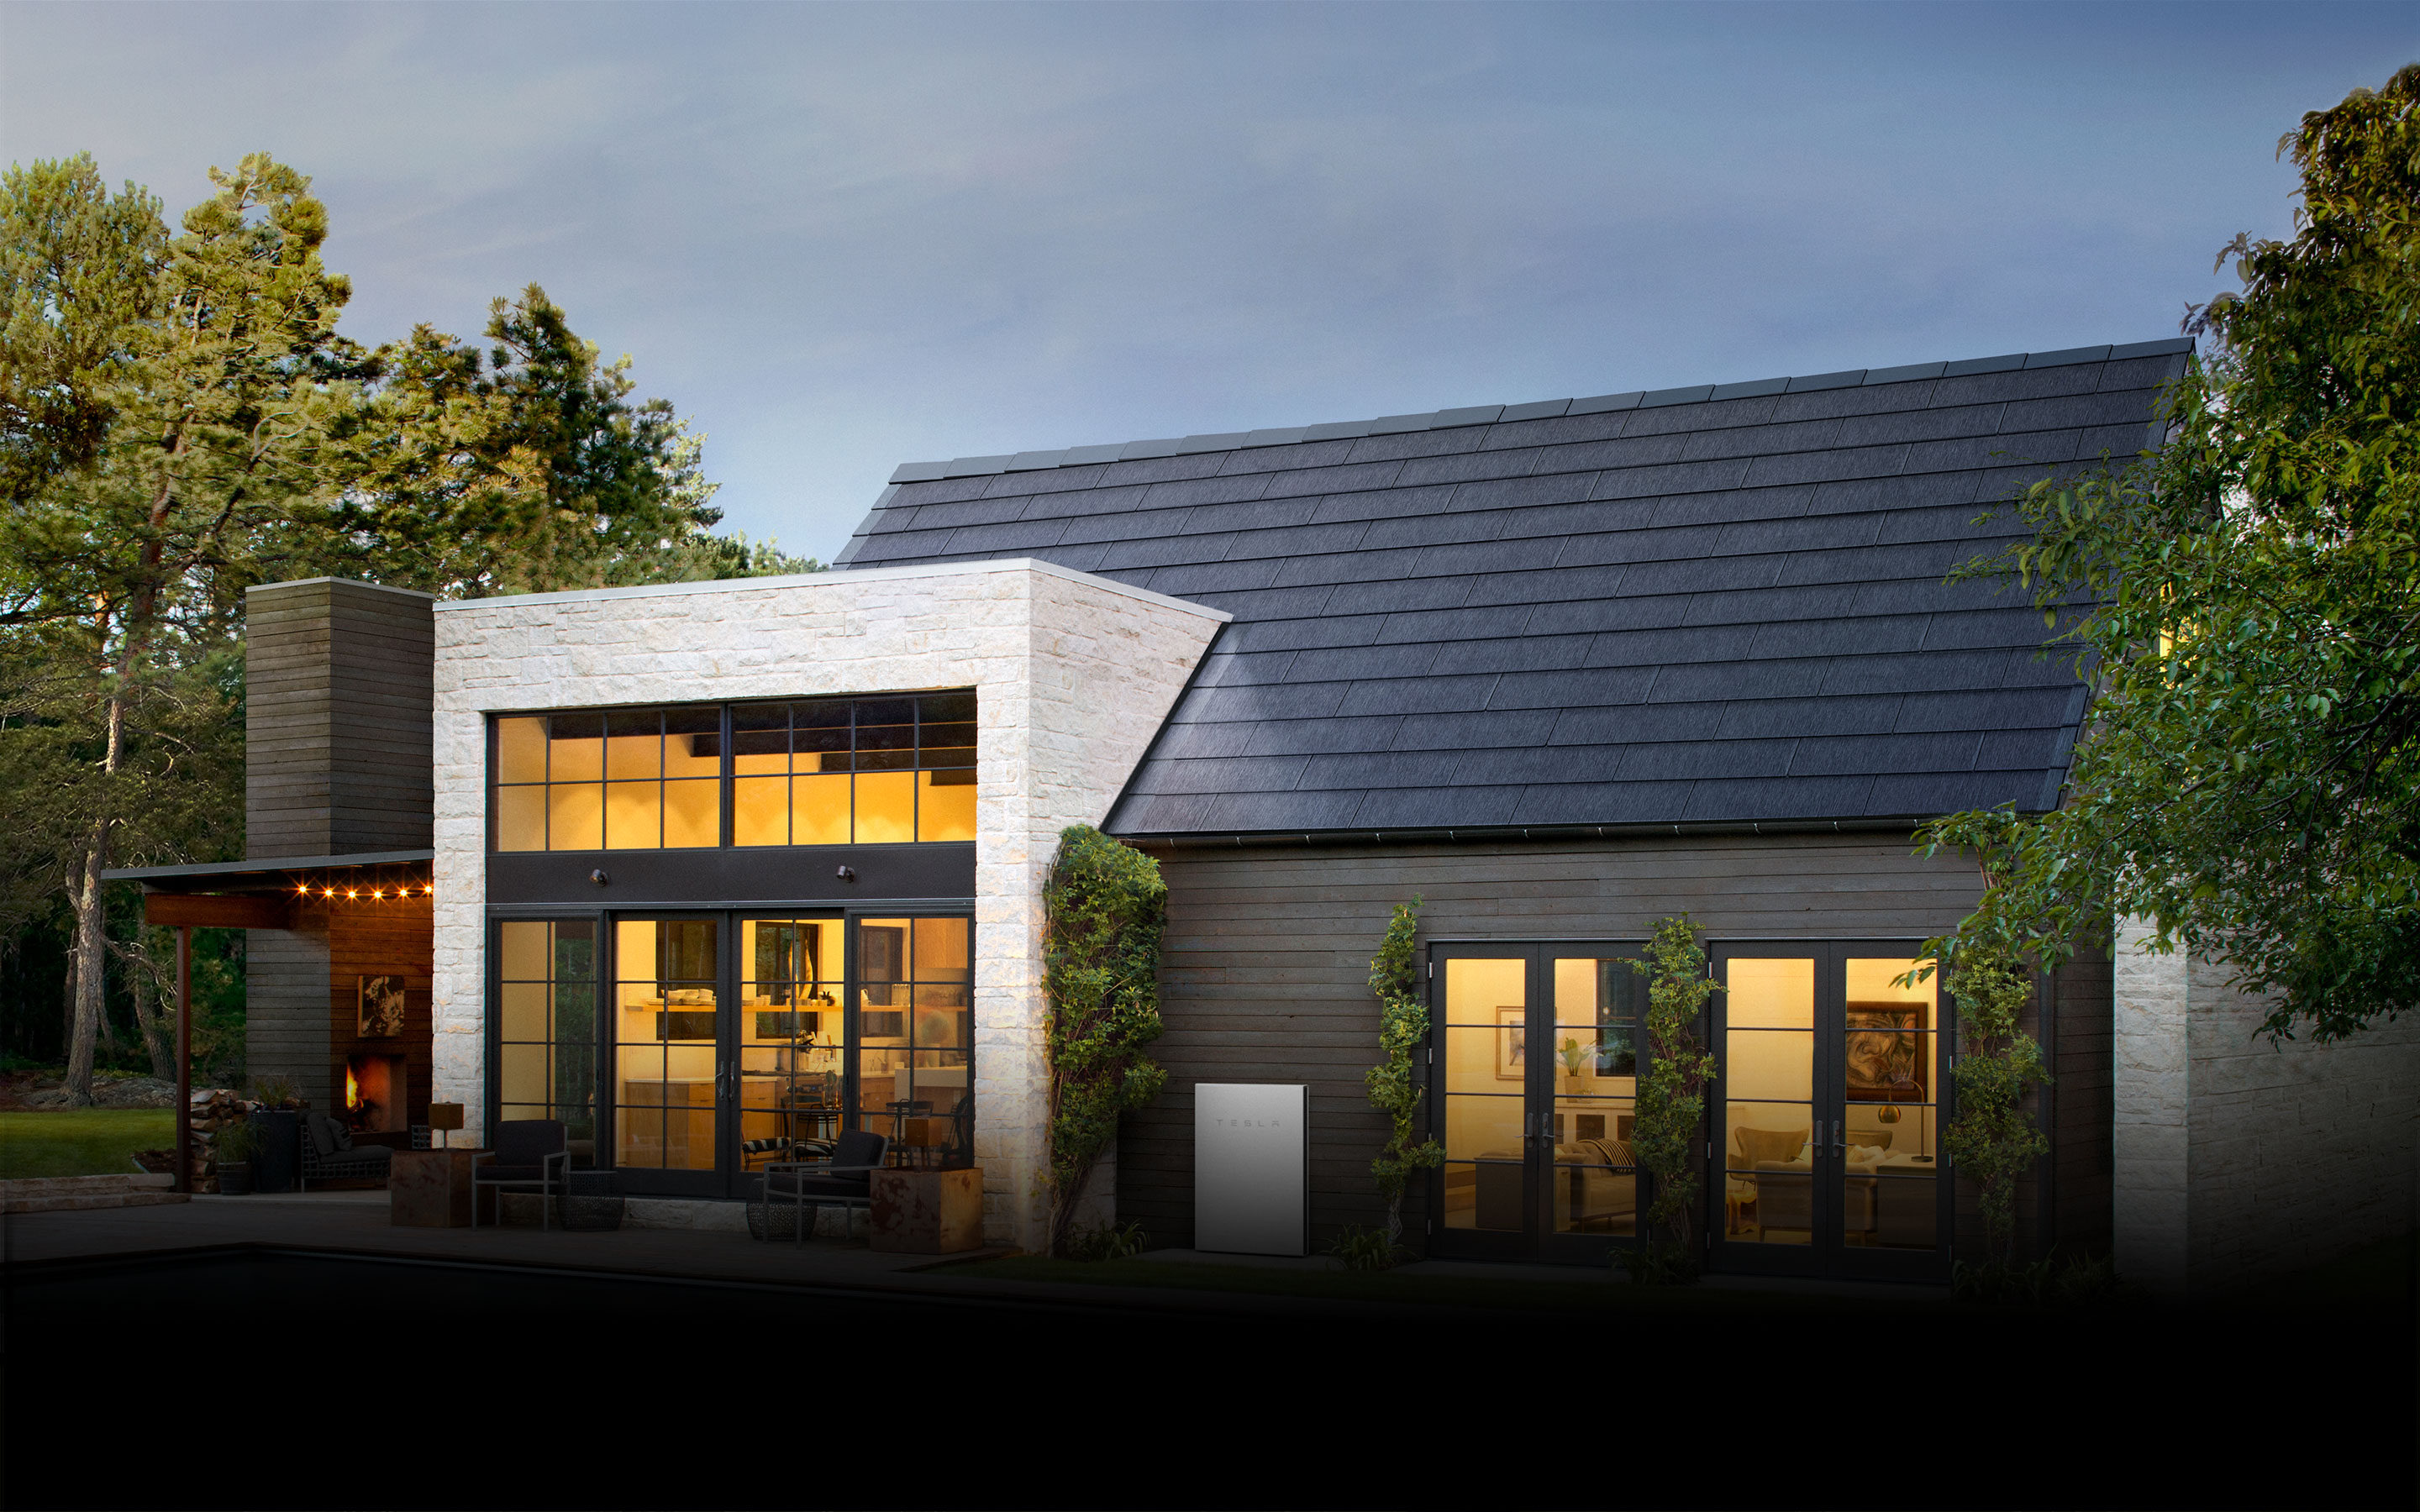 Rendering of house with solar roof tiles on a pitched roof.